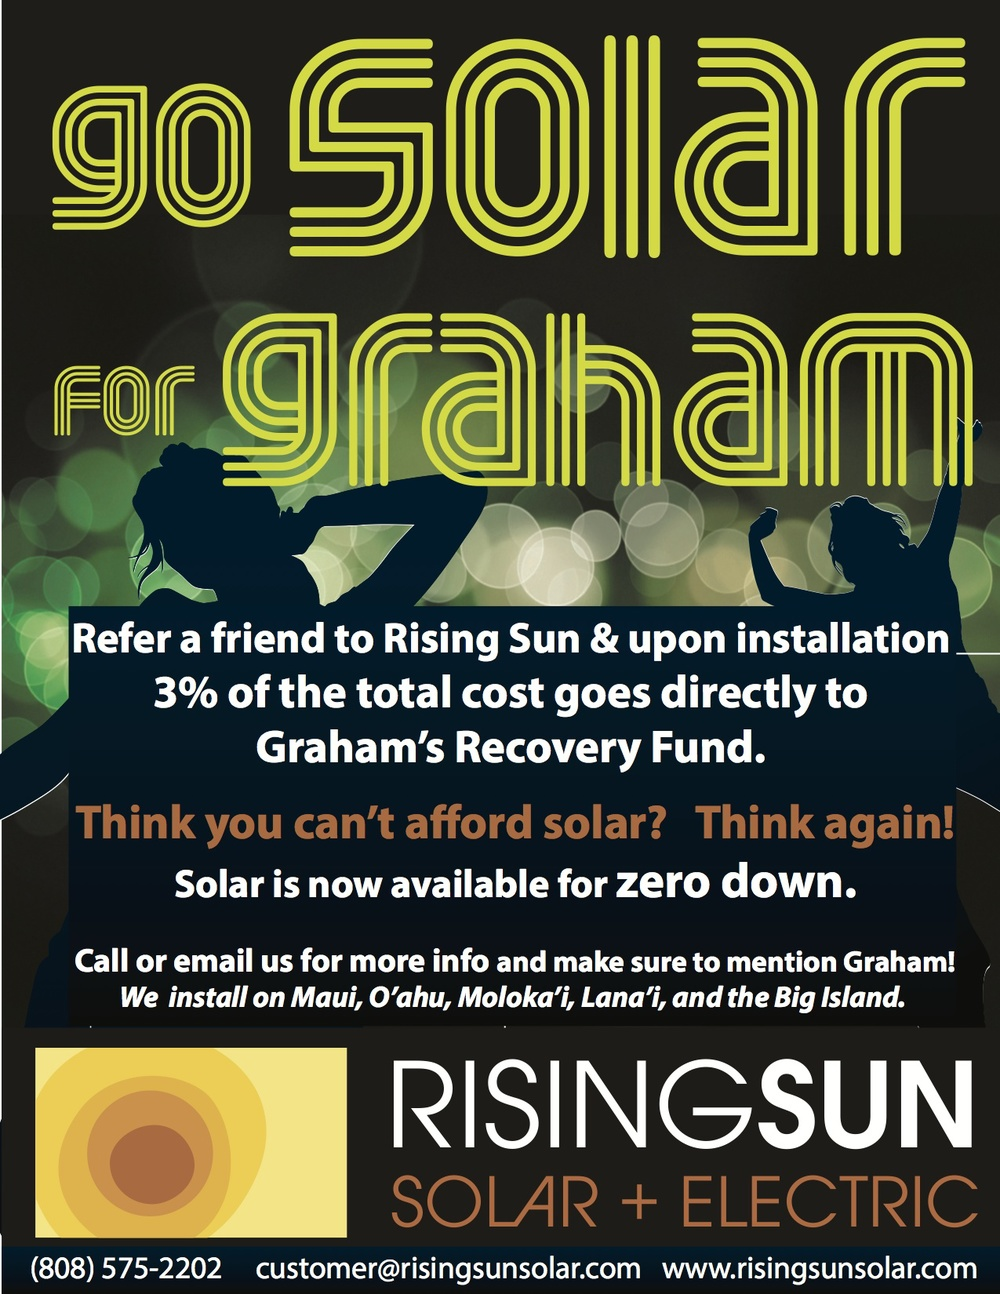 Client: Rising Sun Solar Product: Event Flyer